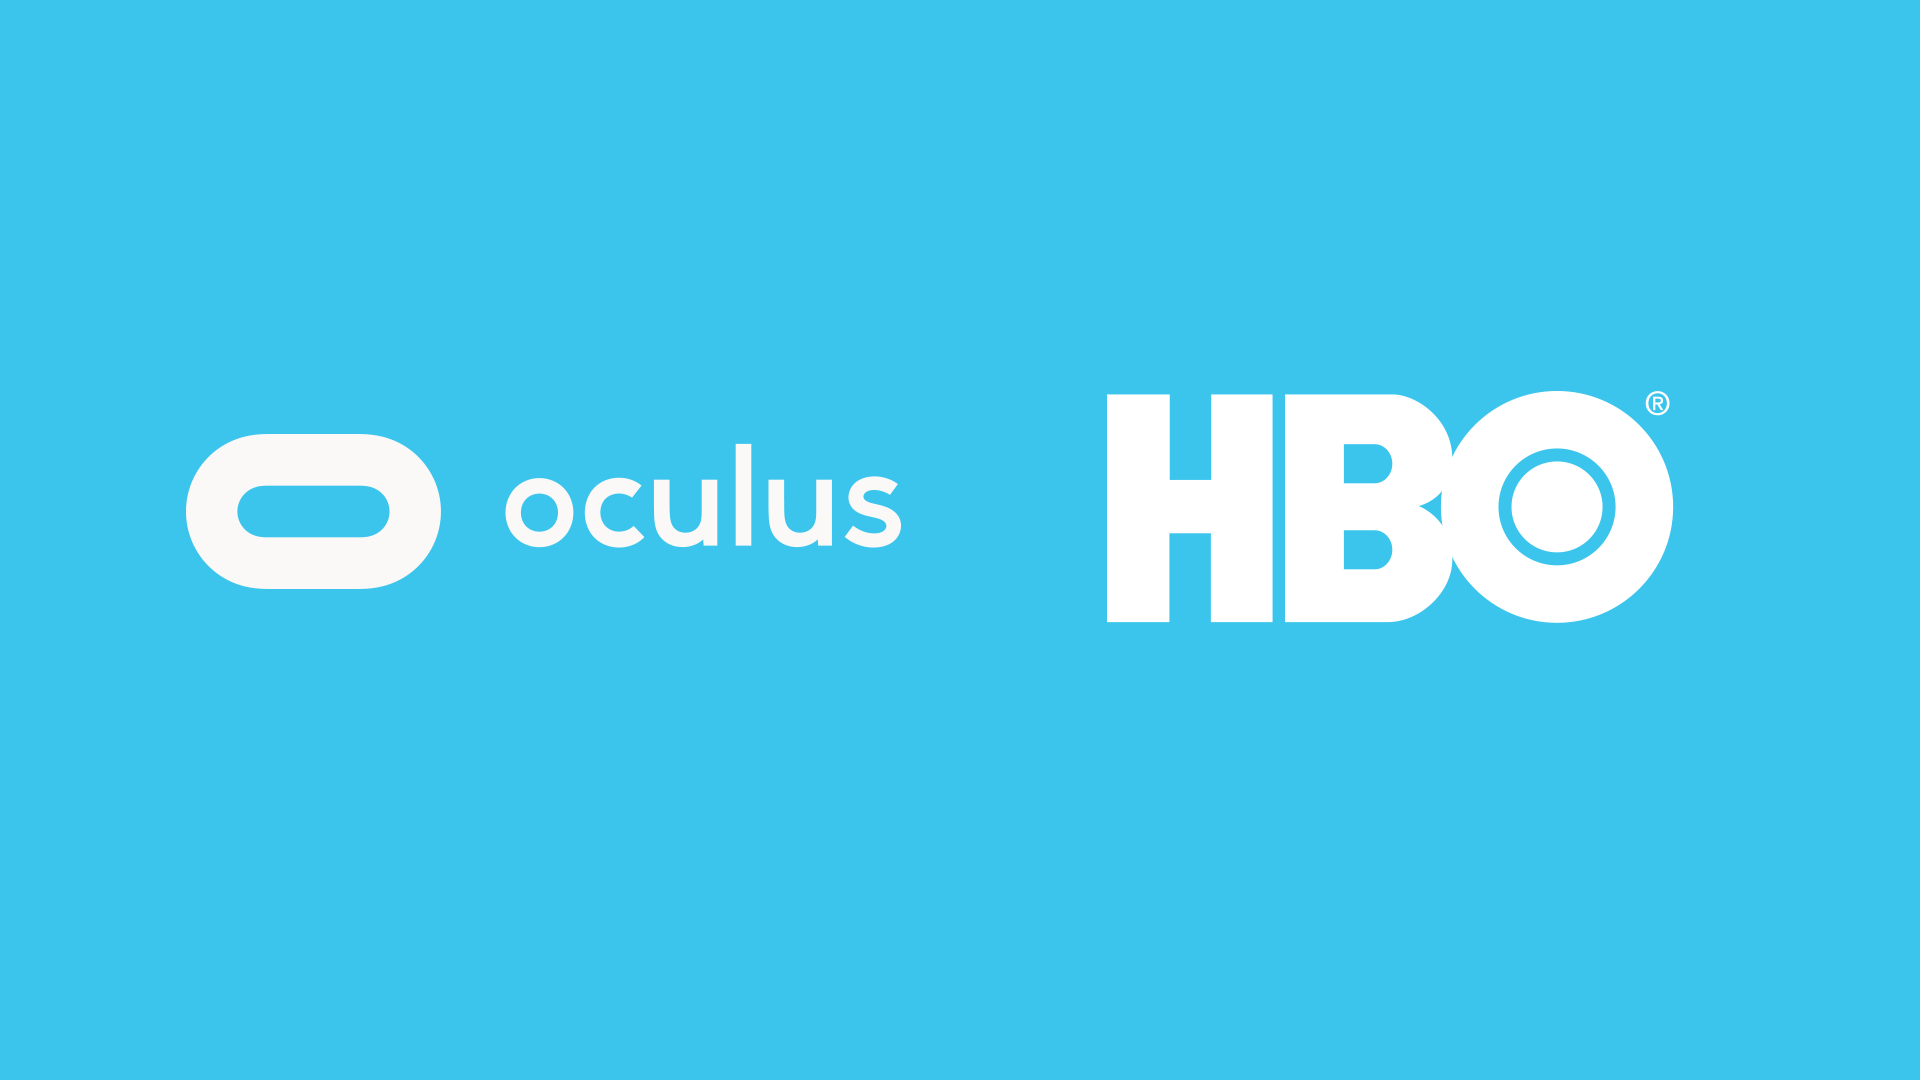 Oculus Story Studio and HBO to Talk Immersive Storytelling at VRDC